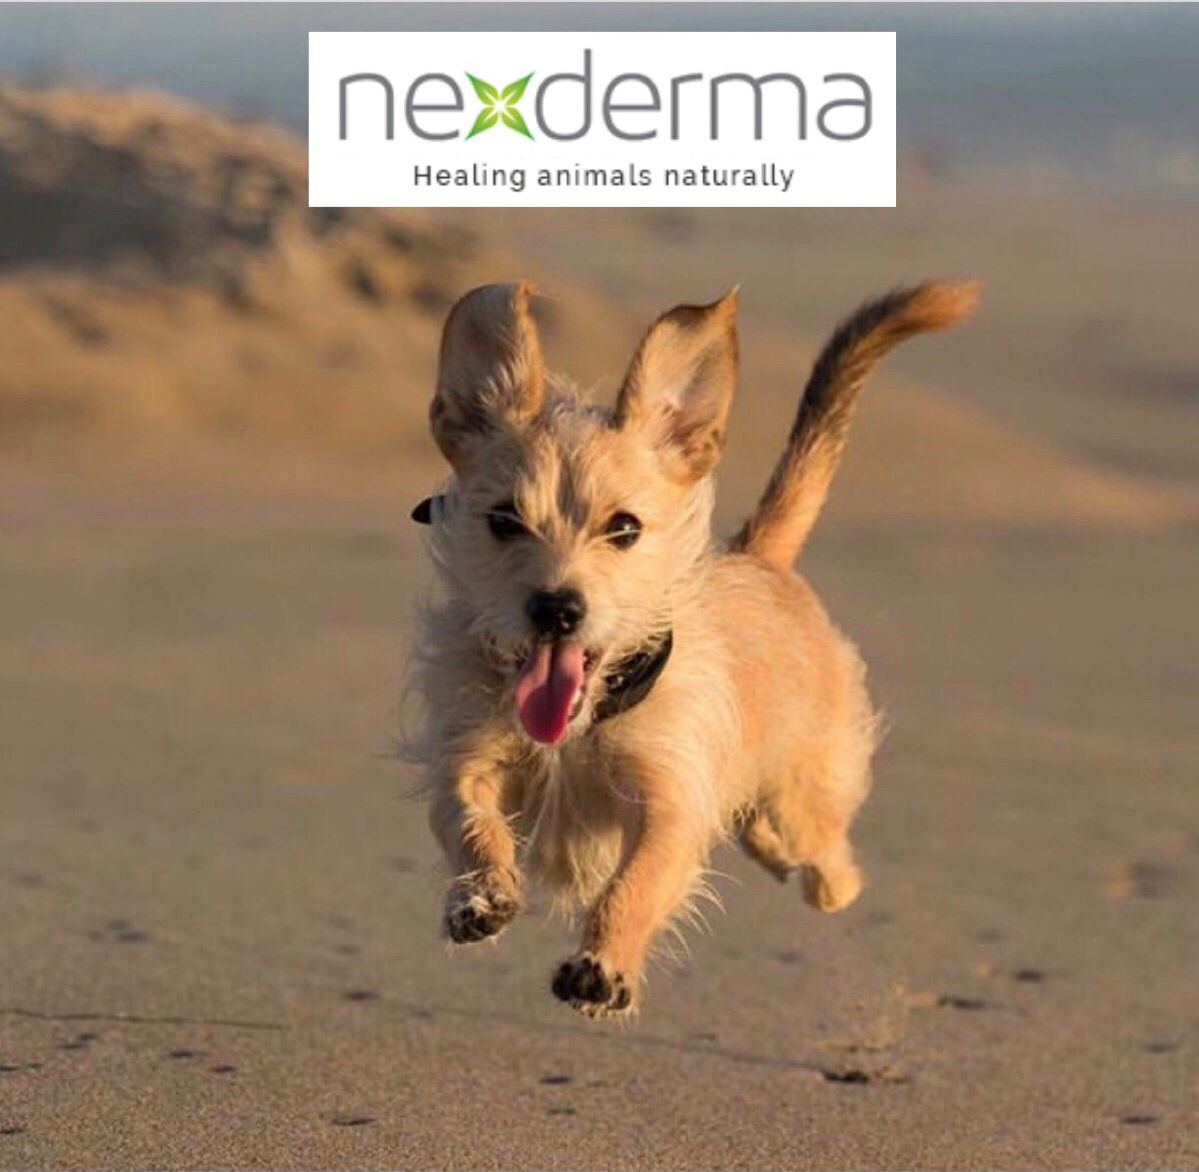 This guy is living his best life after using Nexderma